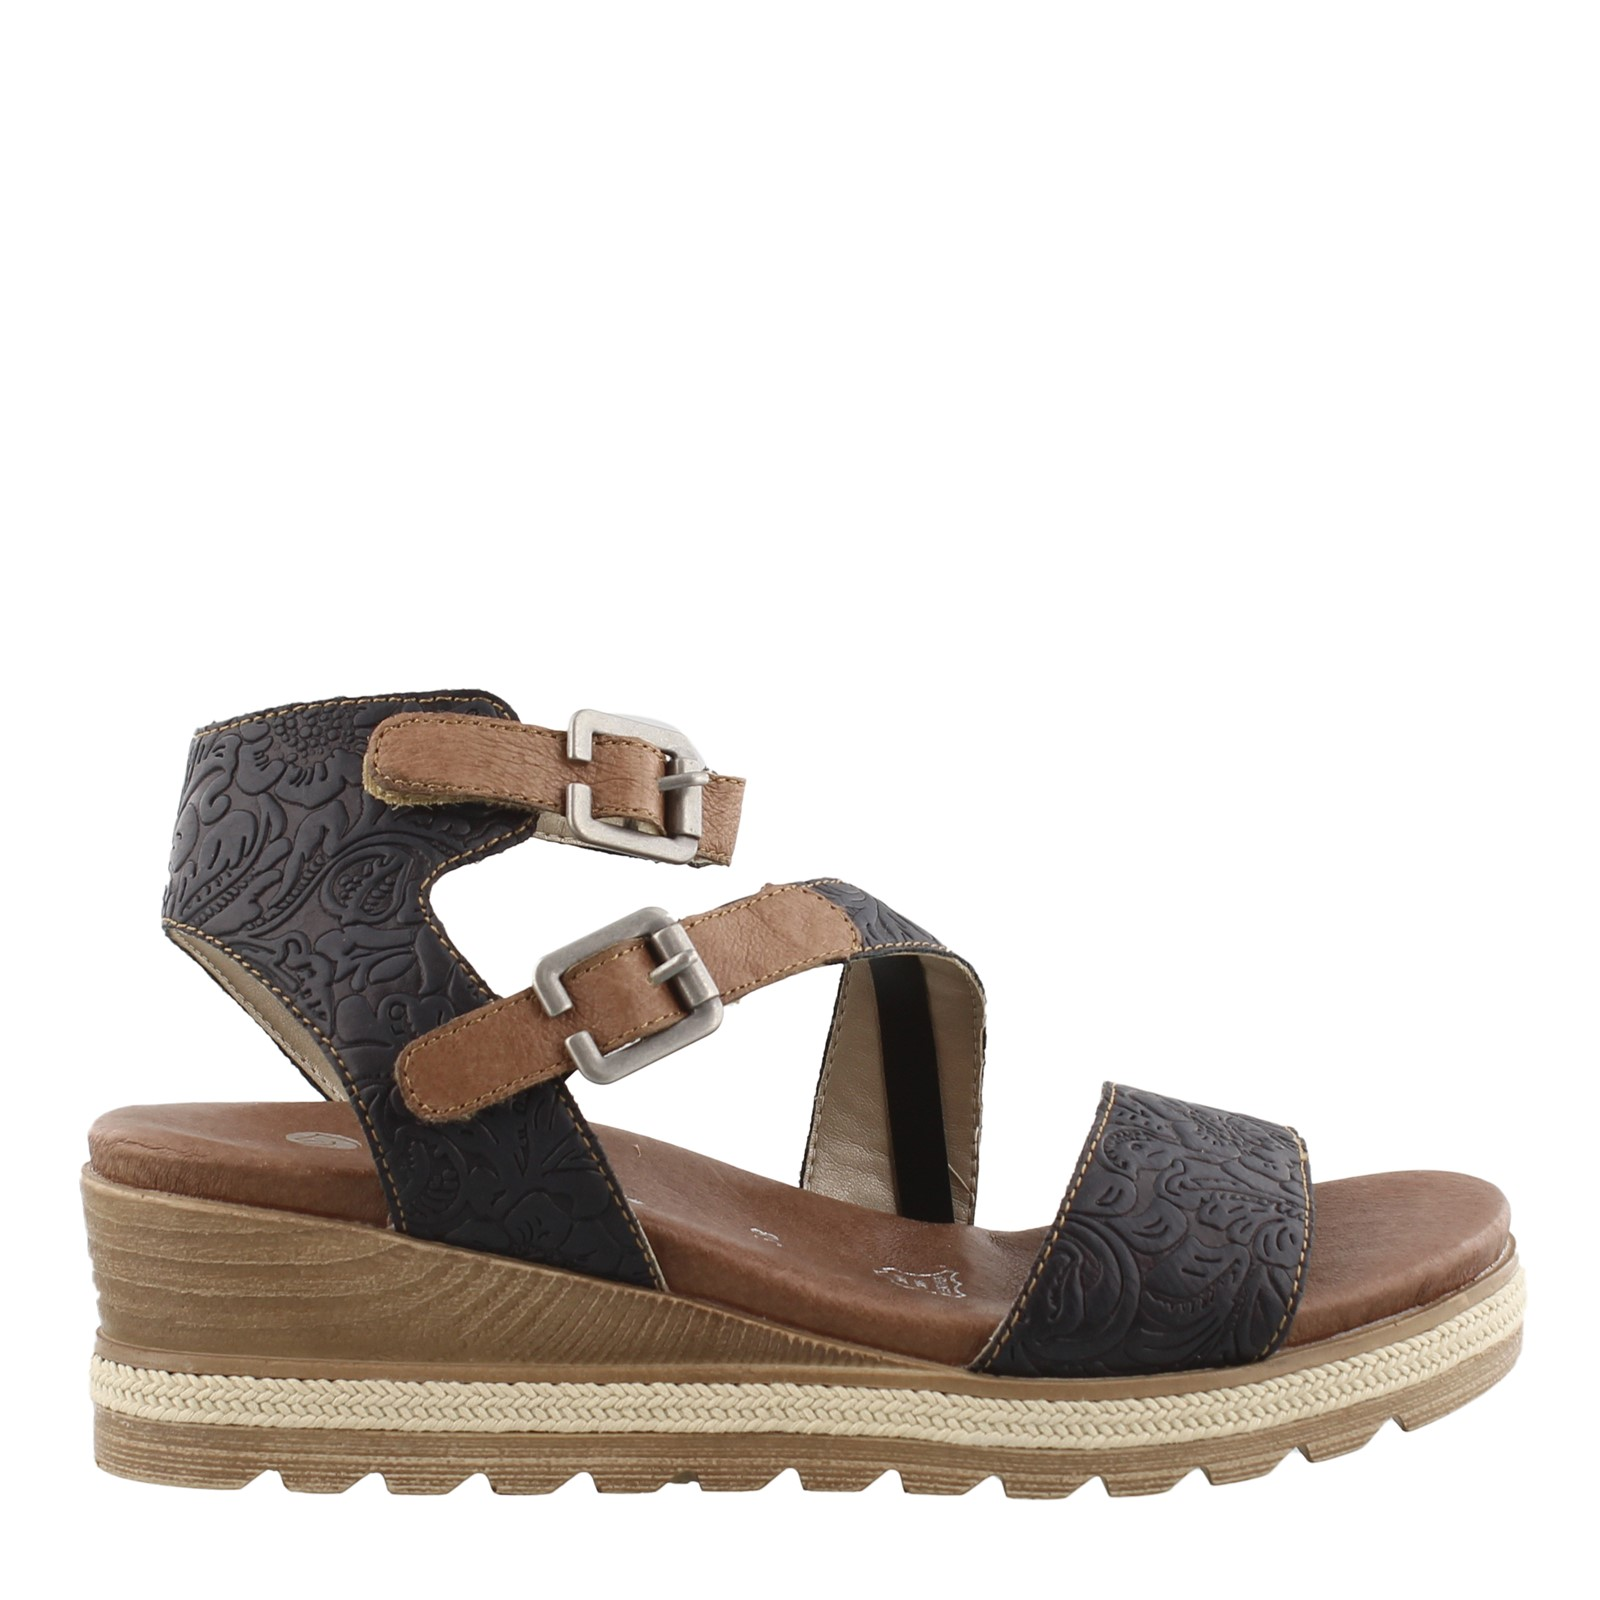 Women's Remonte, Icess 51 Wedge Sandal